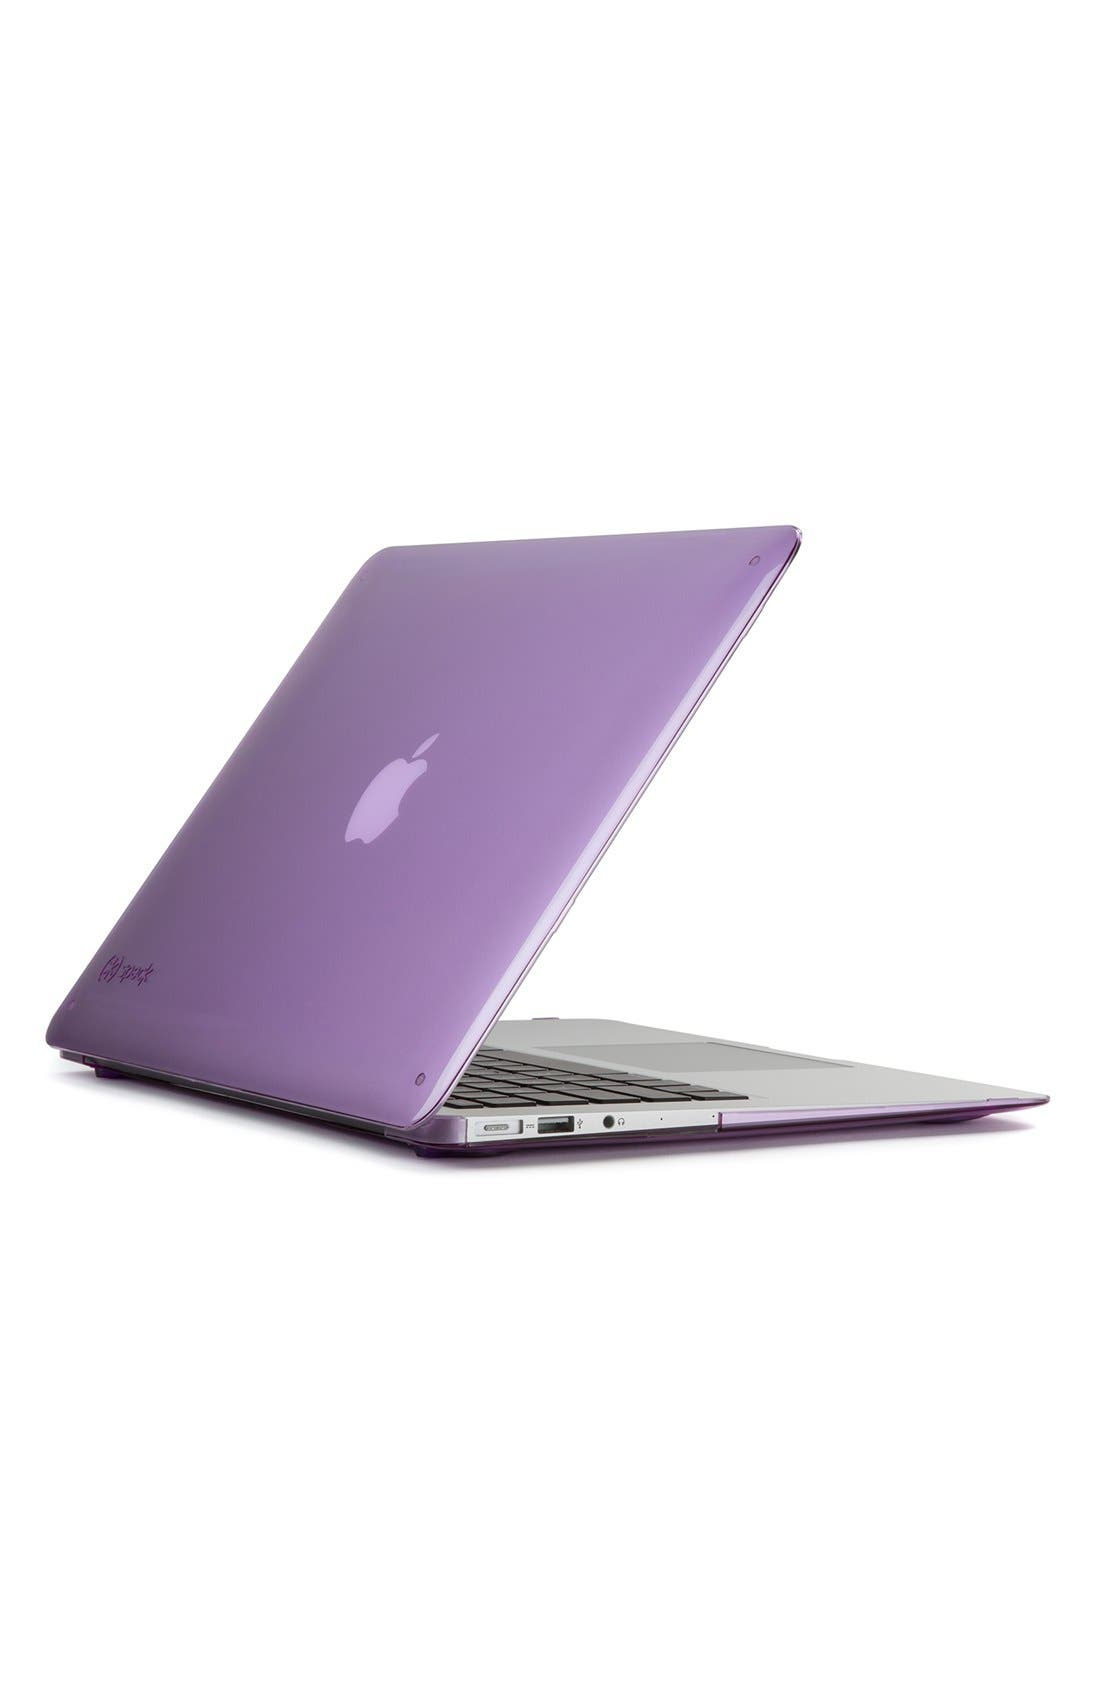 Main Image - Speck 'SmartShell' Snap-On MacBook Air Laptop Case (13 Inch)